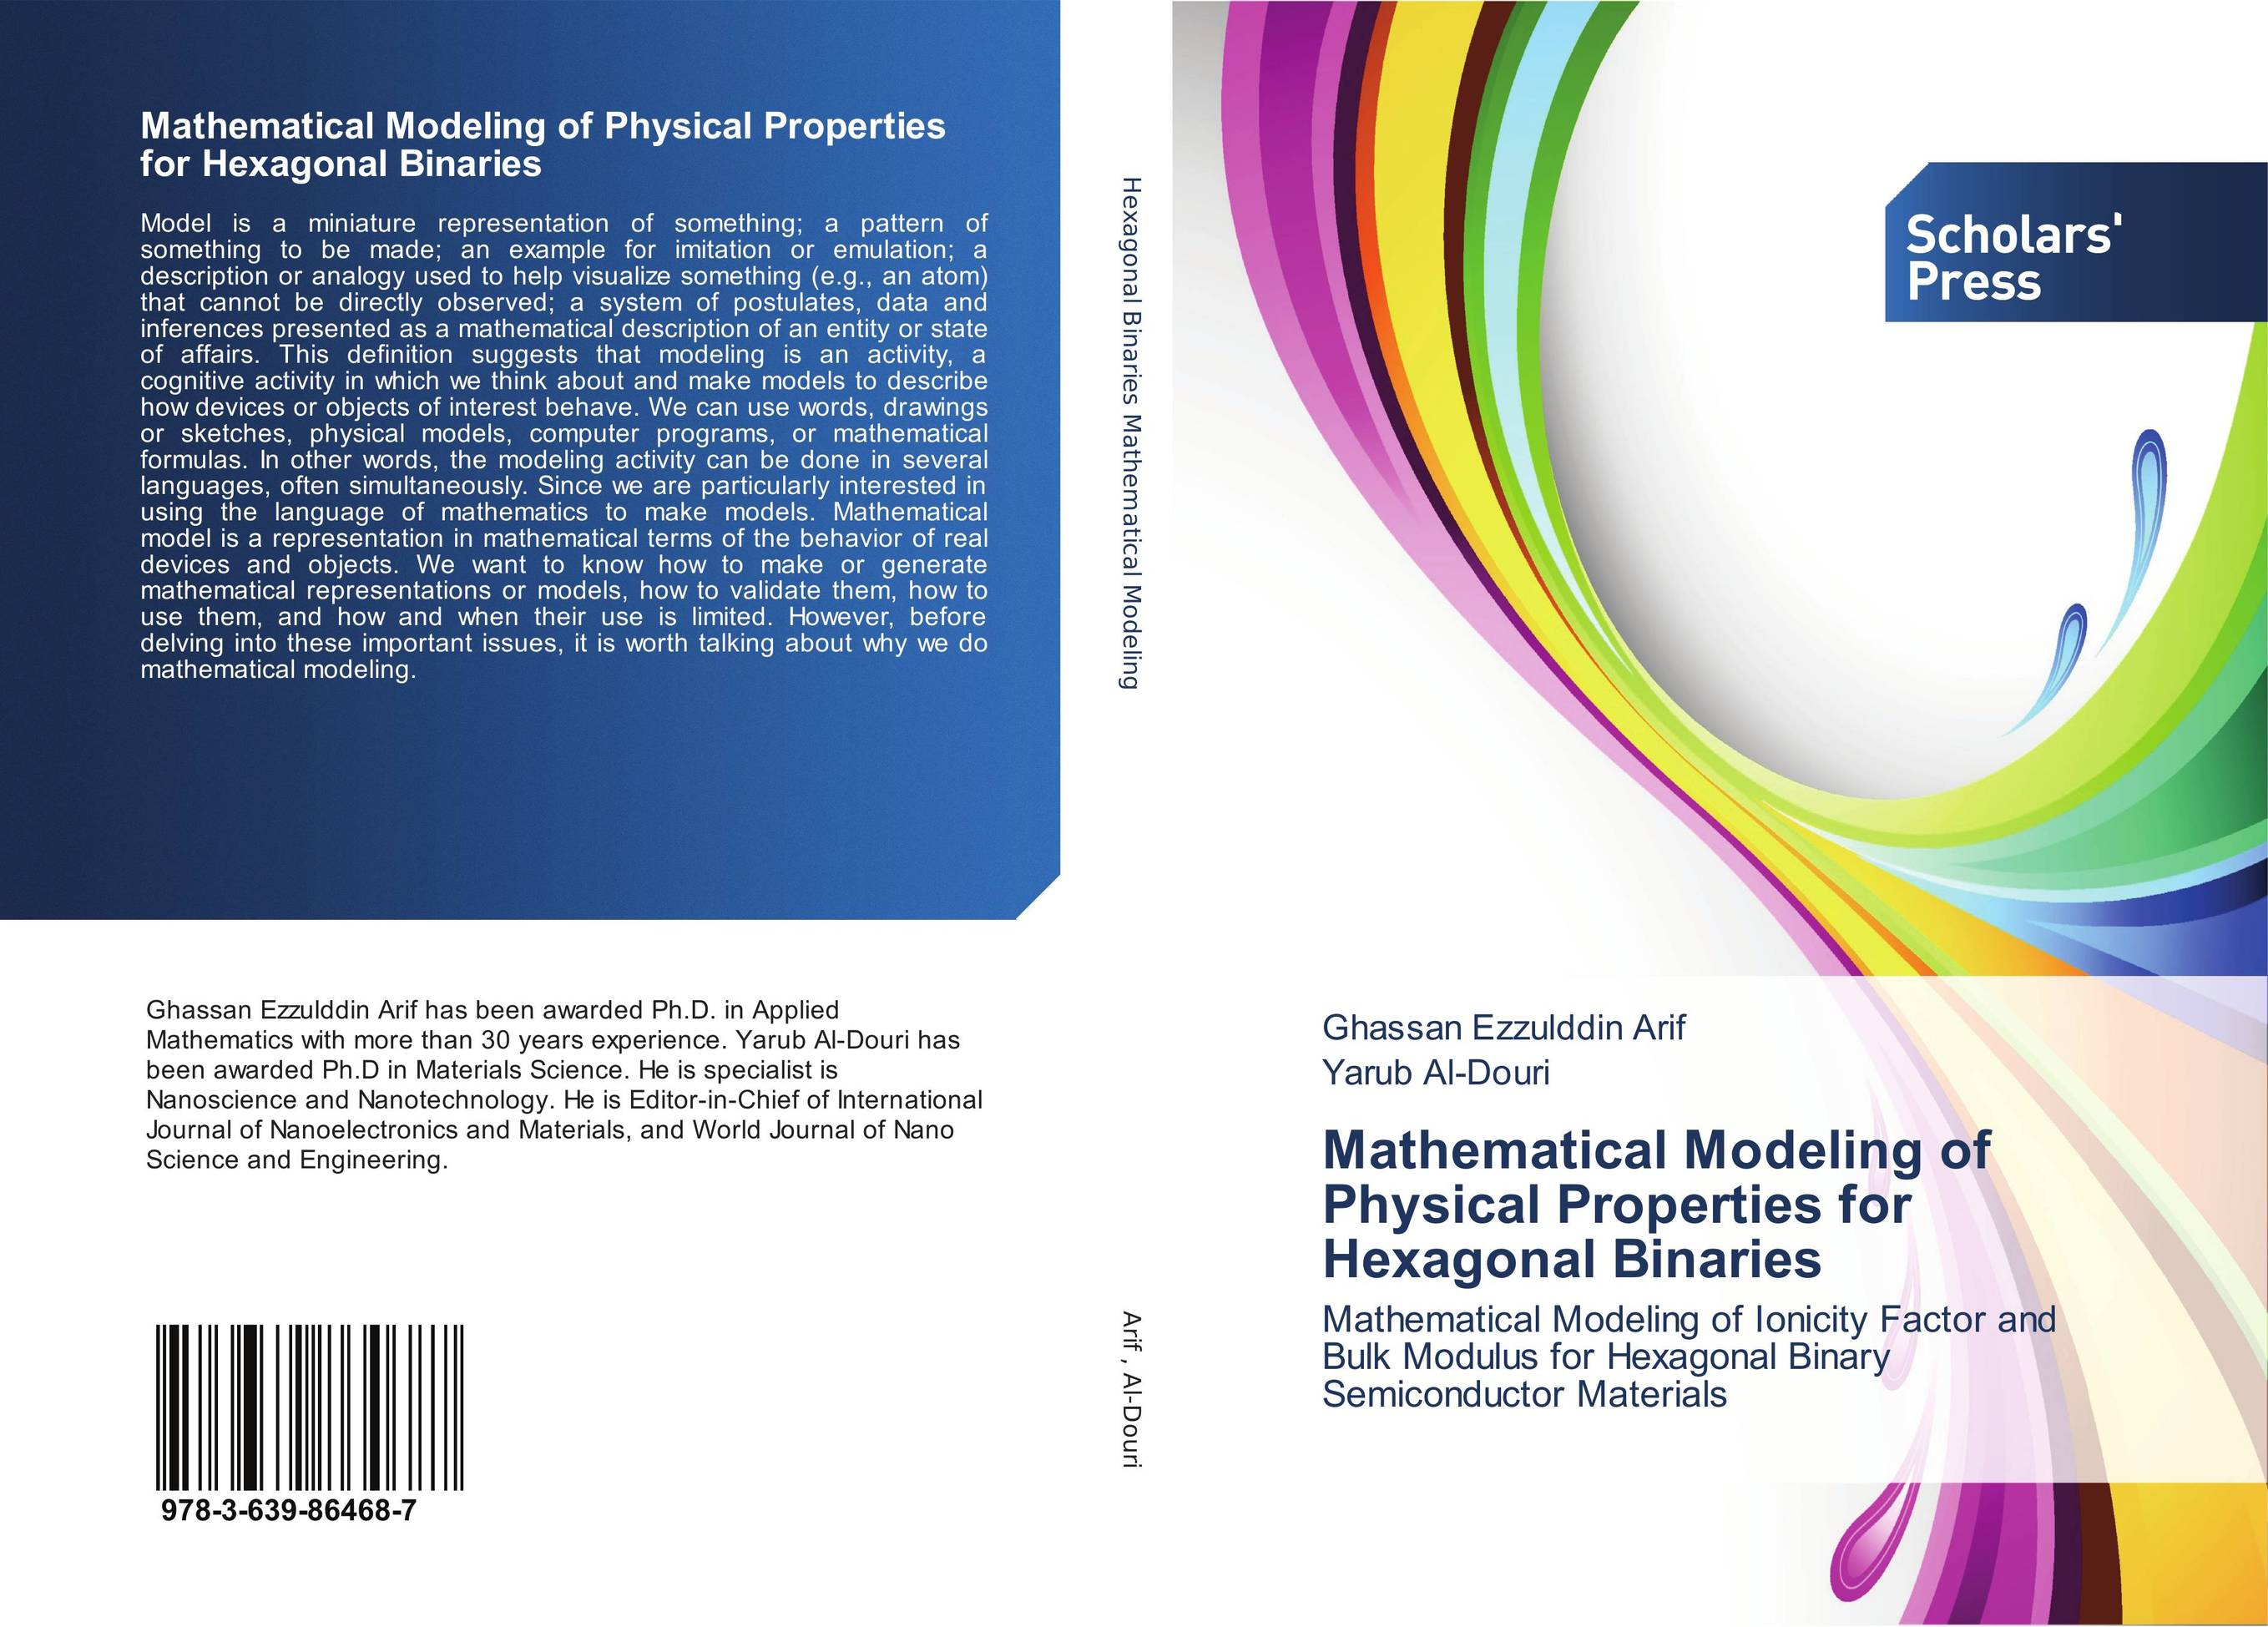 Mathematical Modeling of Physical Properties for Hexagonal Binaries optimization modeling and mathematical analysis